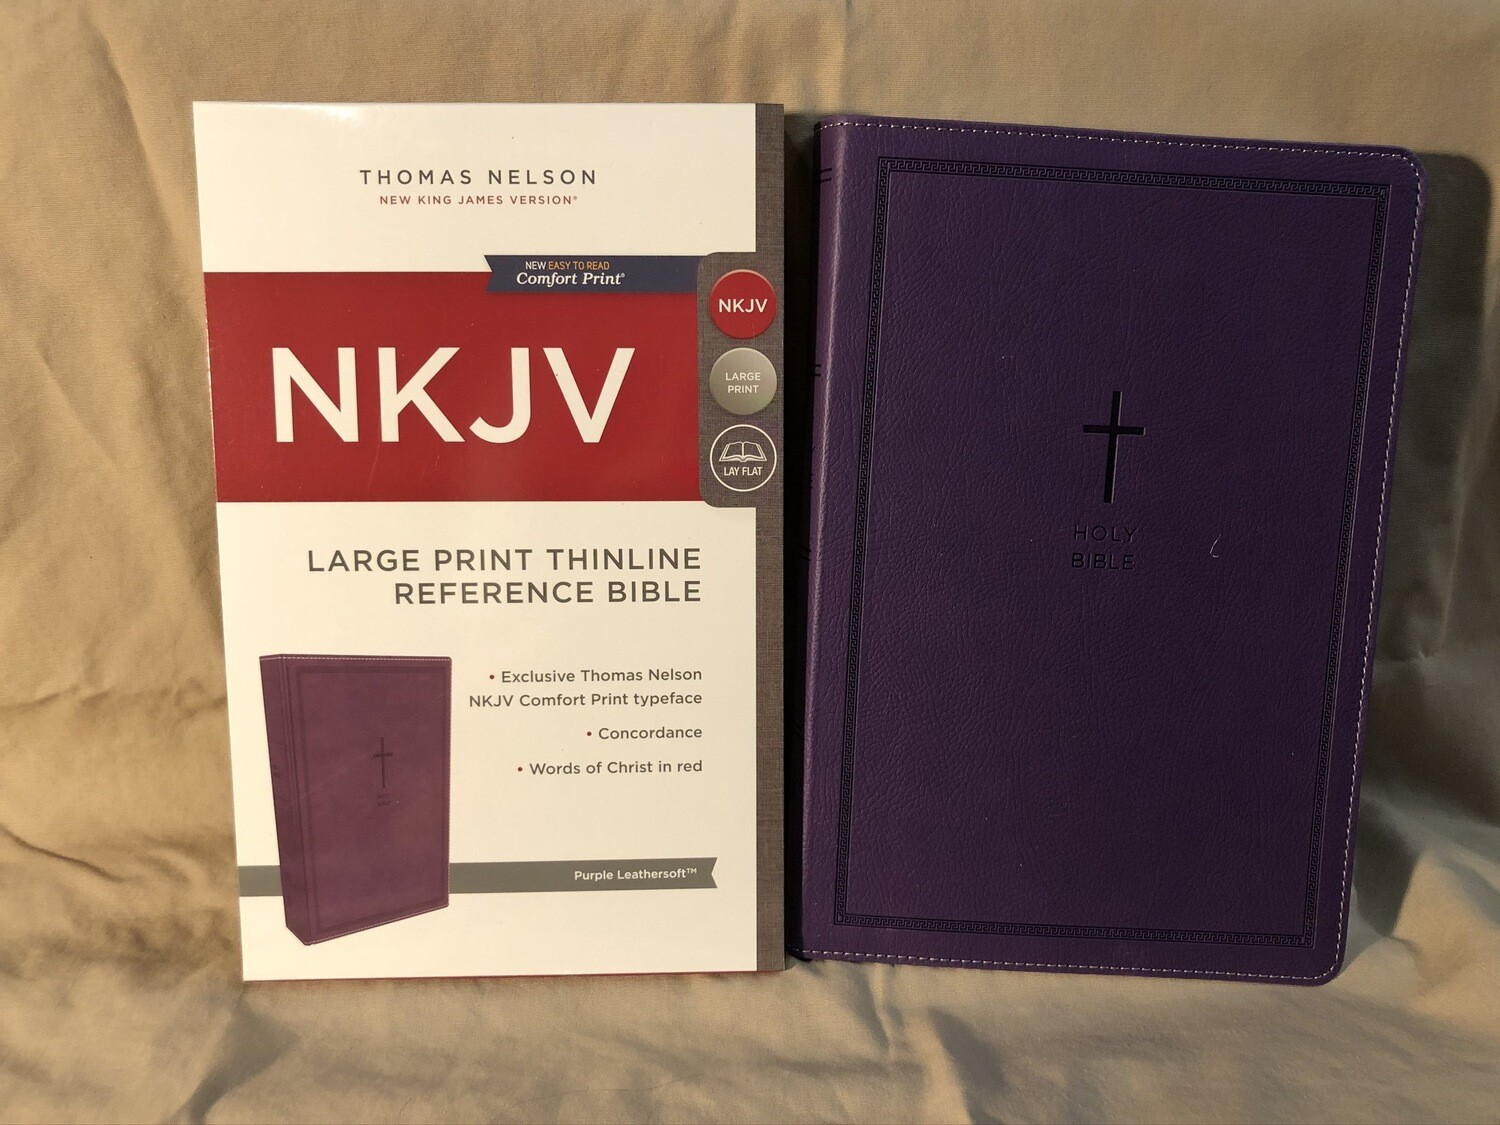 Large Print Purple Leathertouch